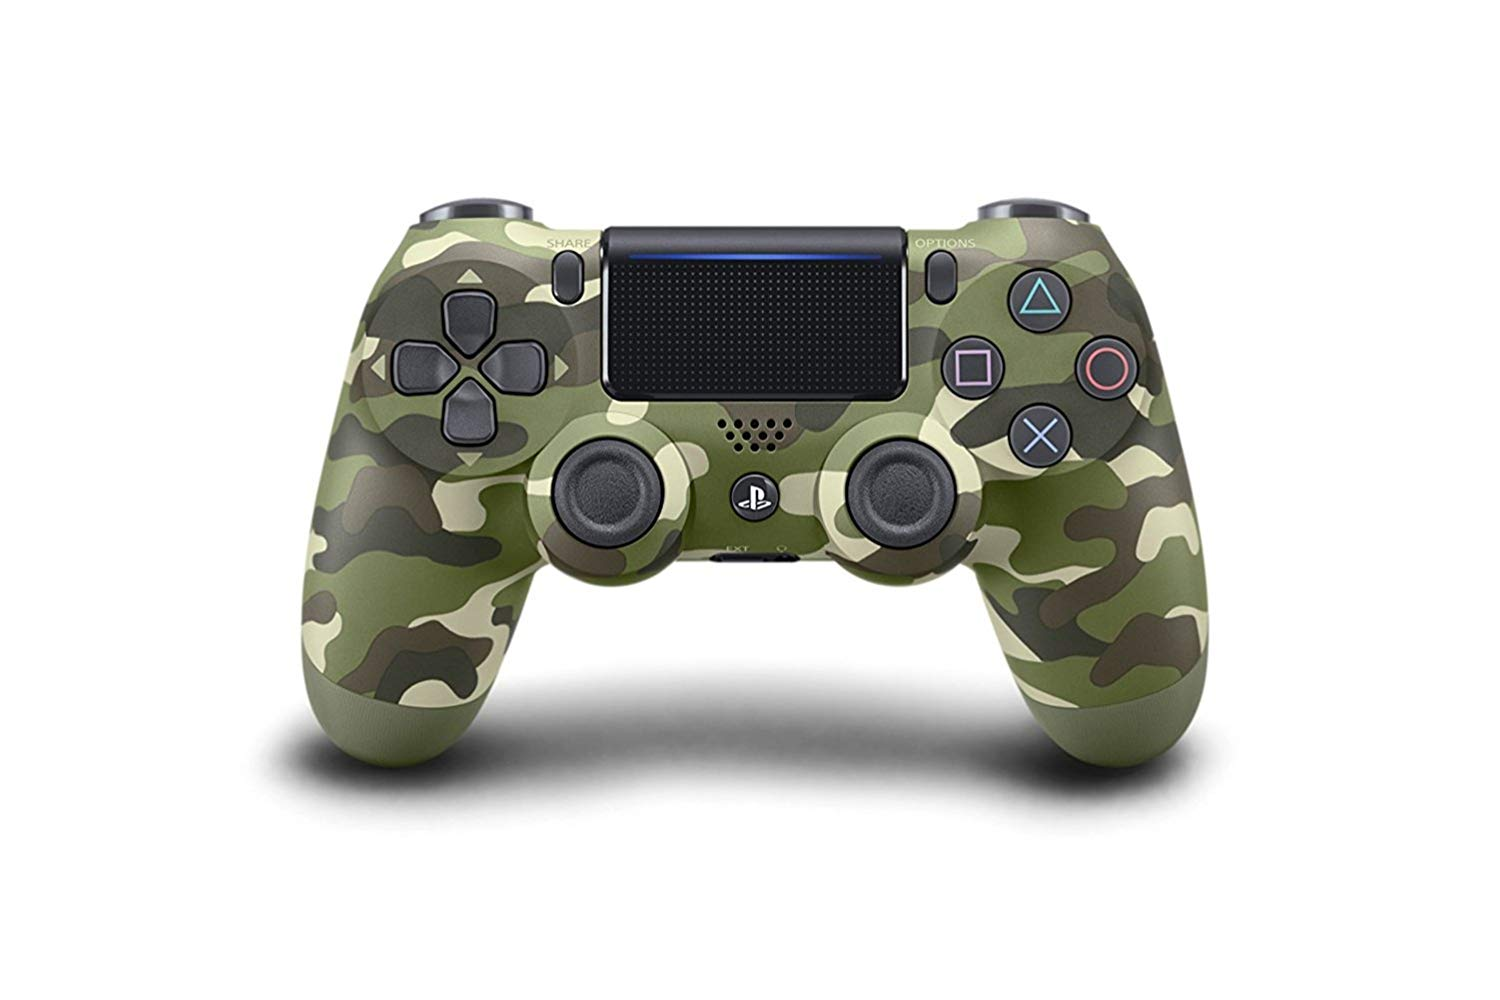 PS4 Dualshock 4 Wireless Controller Green Camouflage